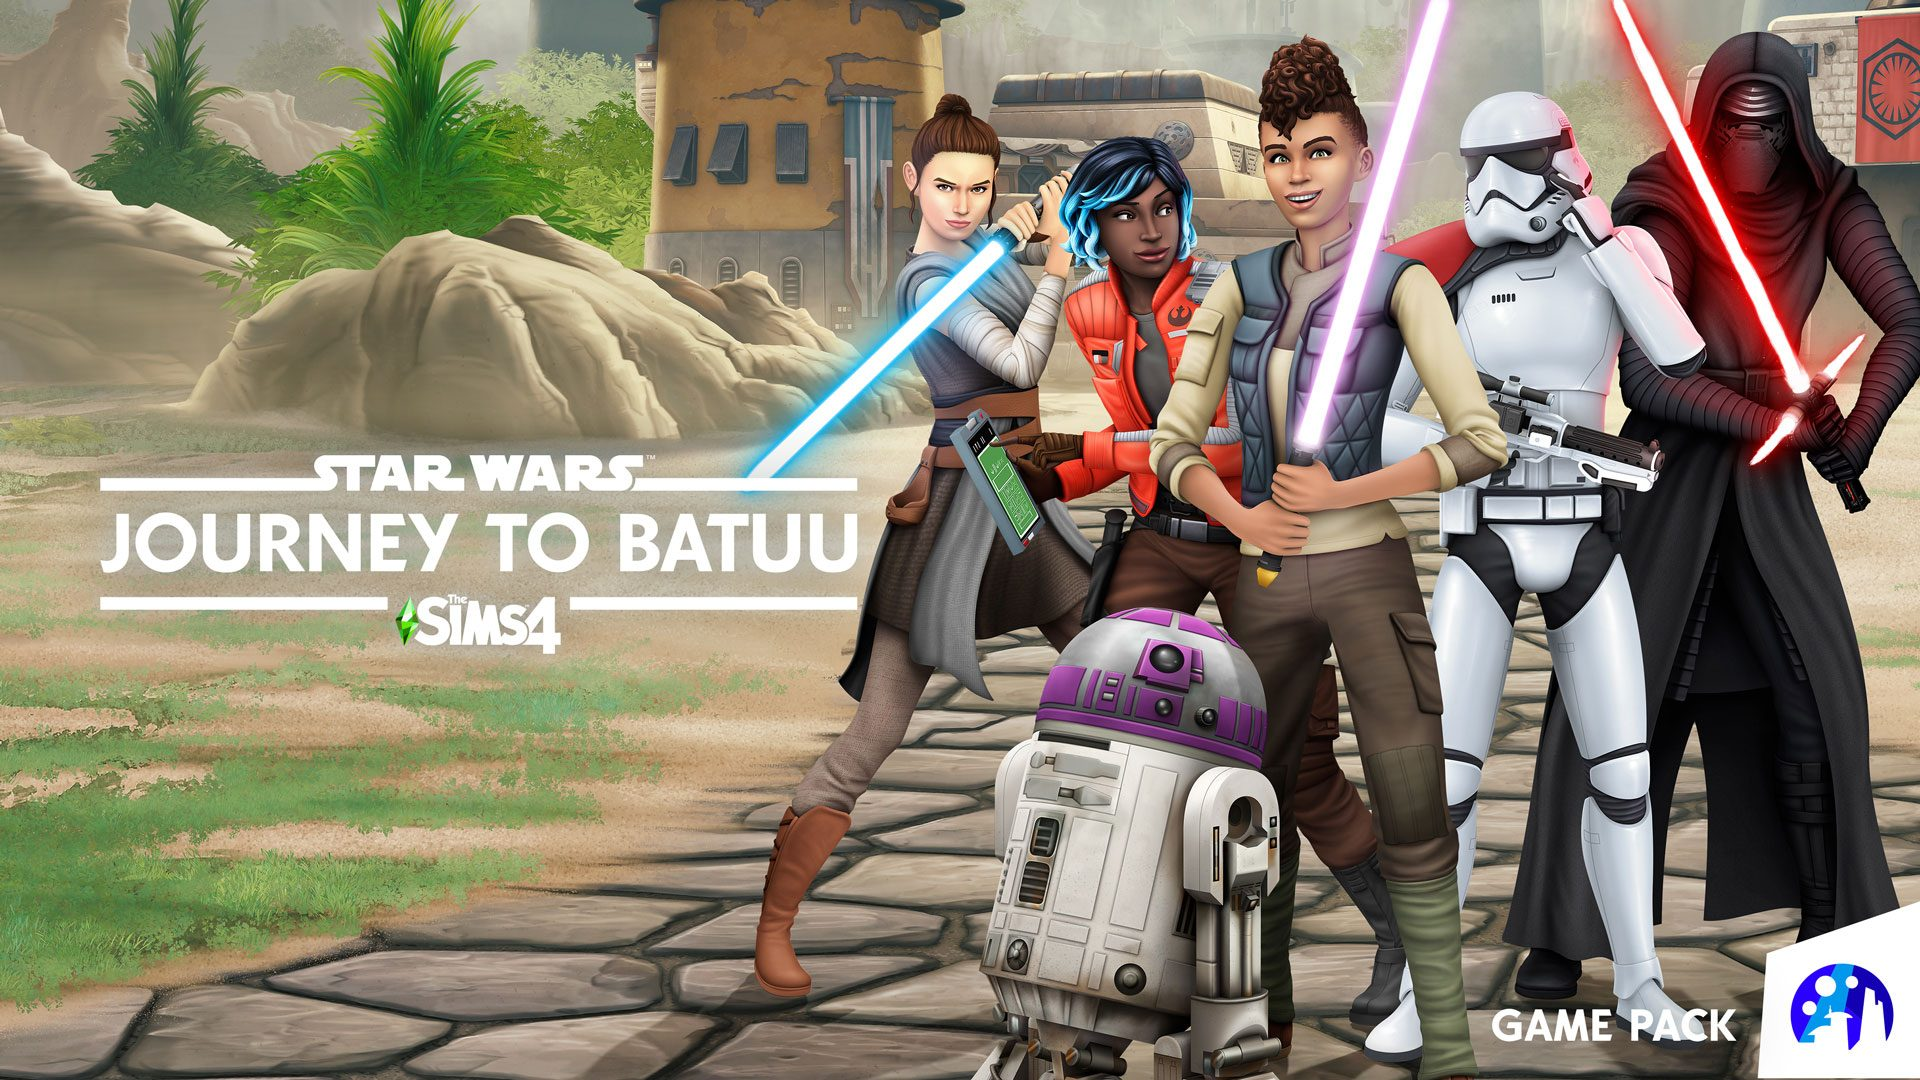 The Sims 4: Star Wars Journey to Batuu Steam